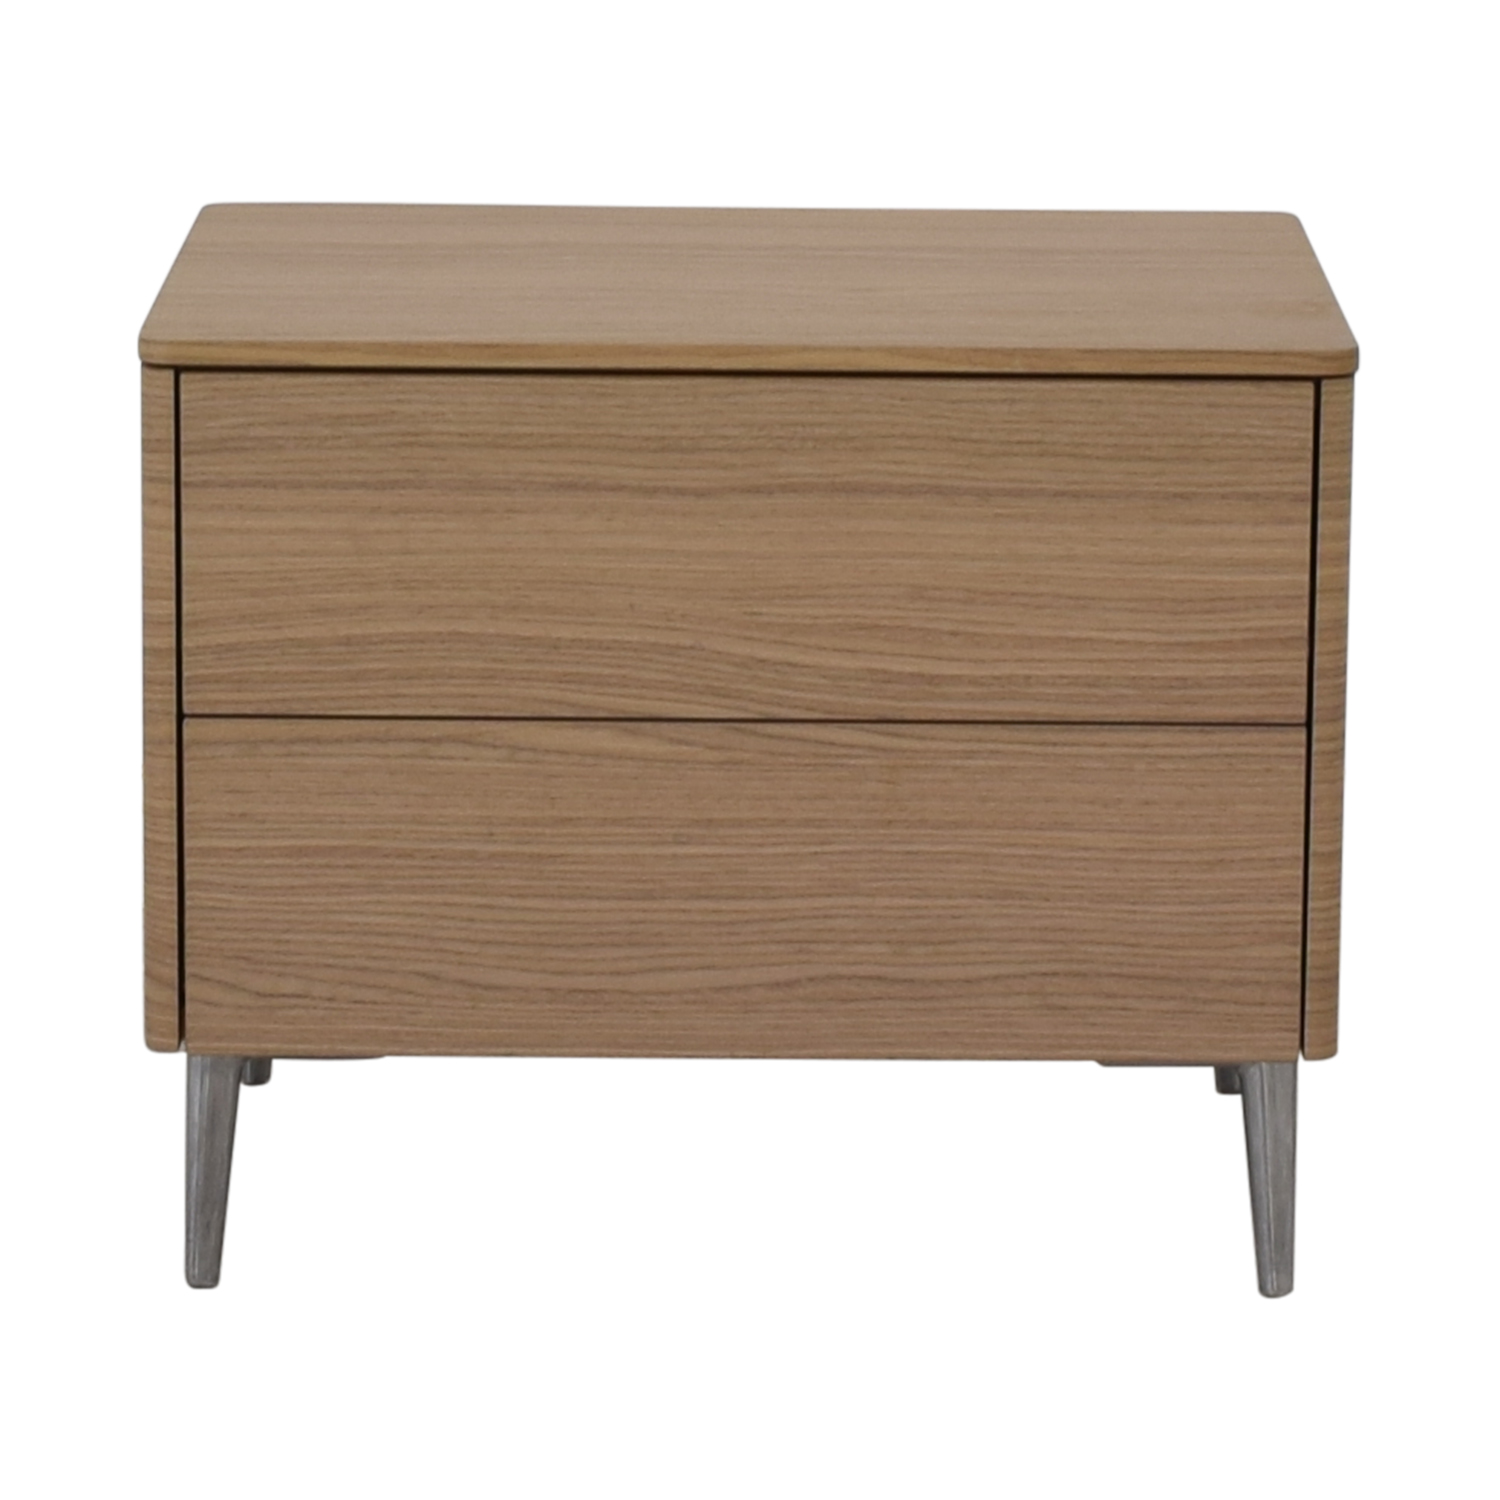 Calligaris Calligaris Boston Two Drawer Nightstand second hand